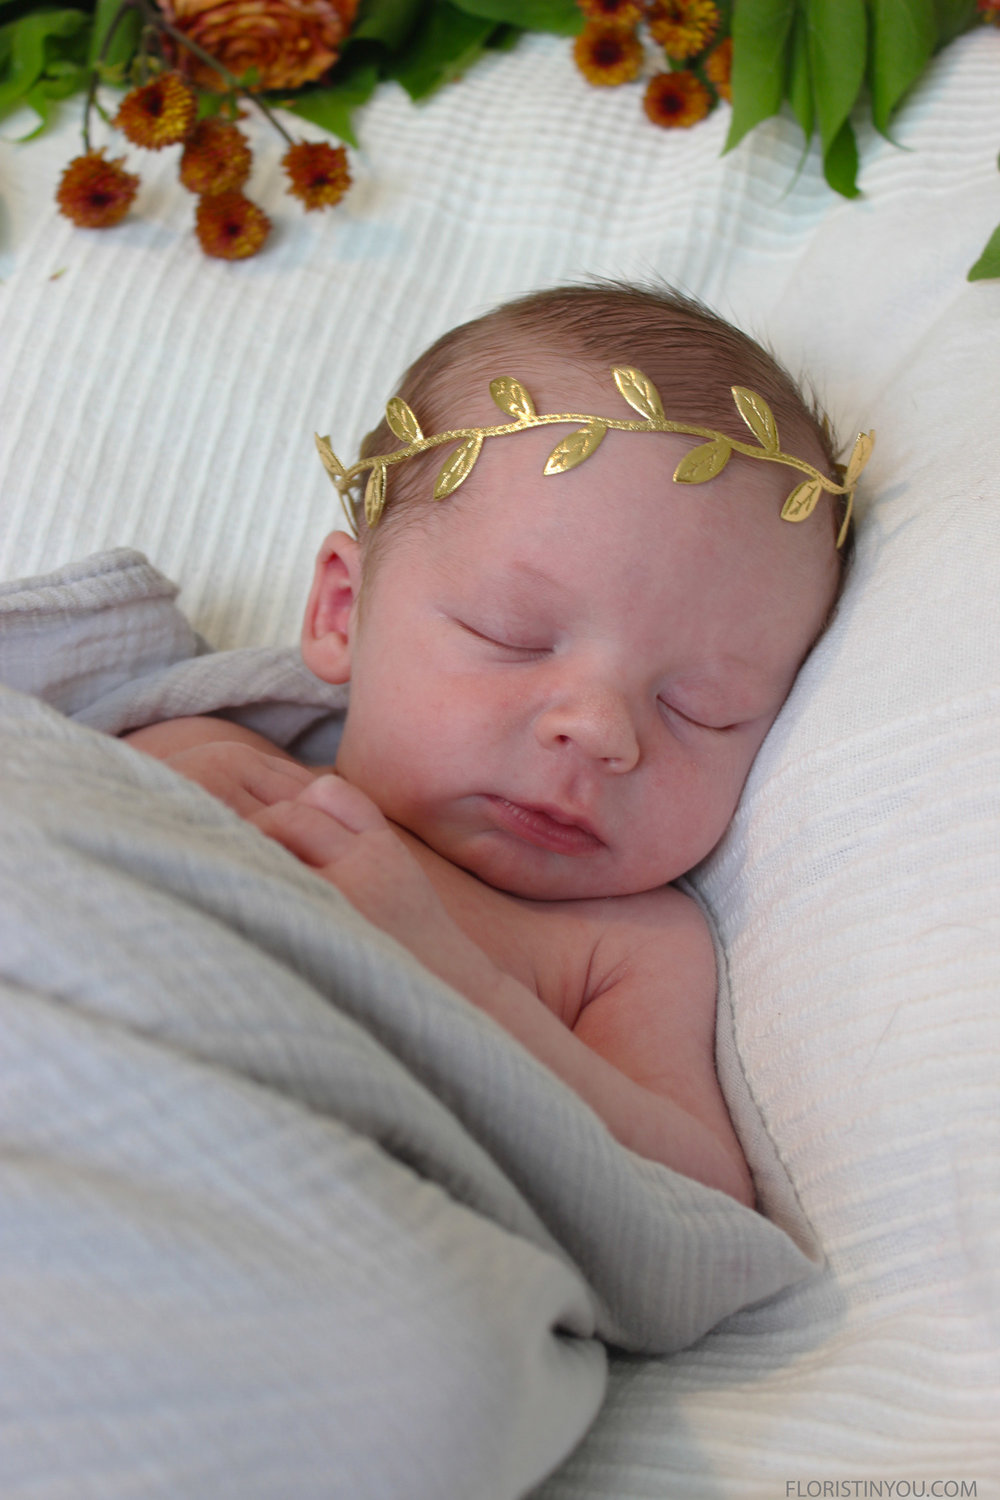 You can swaddle baby and take your newborn photos while baby sleeps. They are not this small very long. Enjoy!